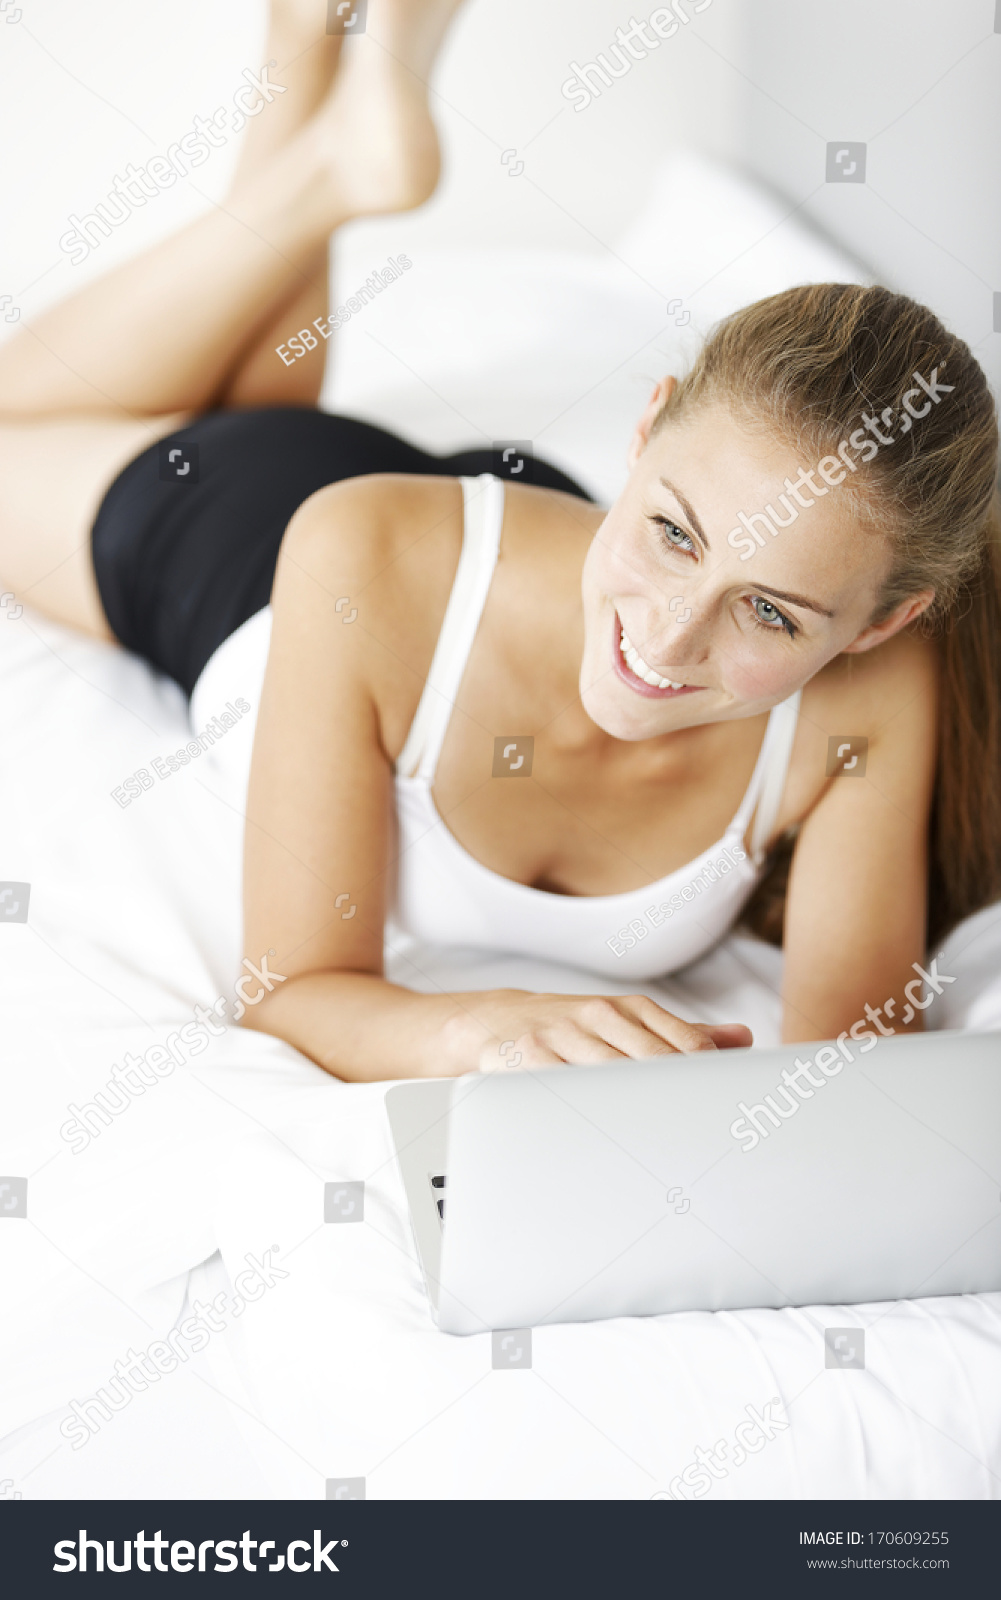 Friends Lying On Bed With Long Hair